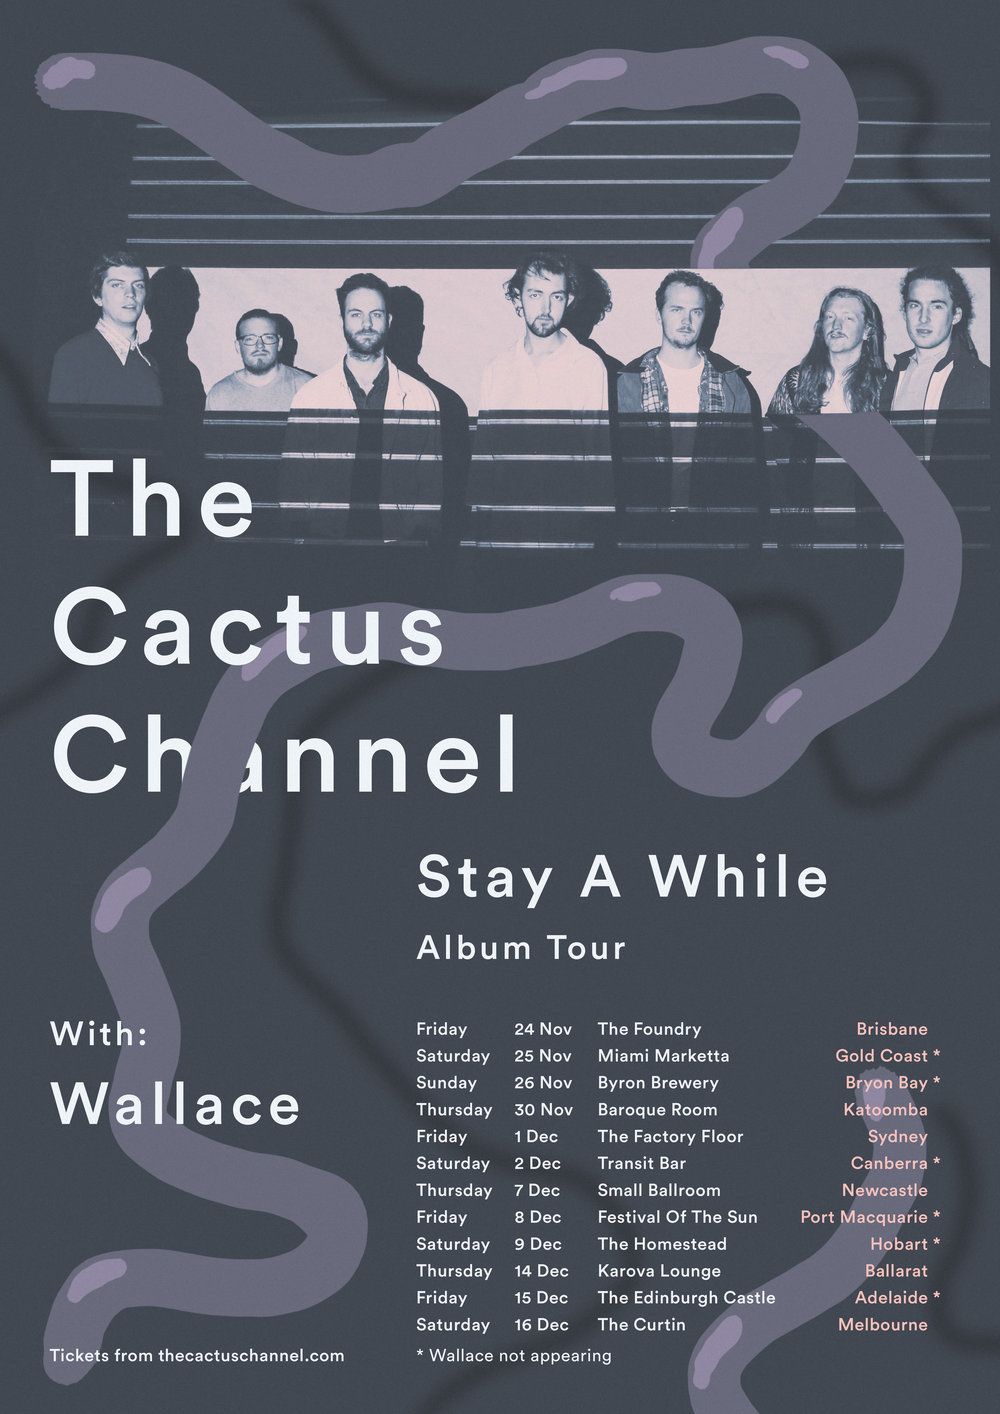 TCCH-StayAWhile-TourPoster_V1-00.jpg